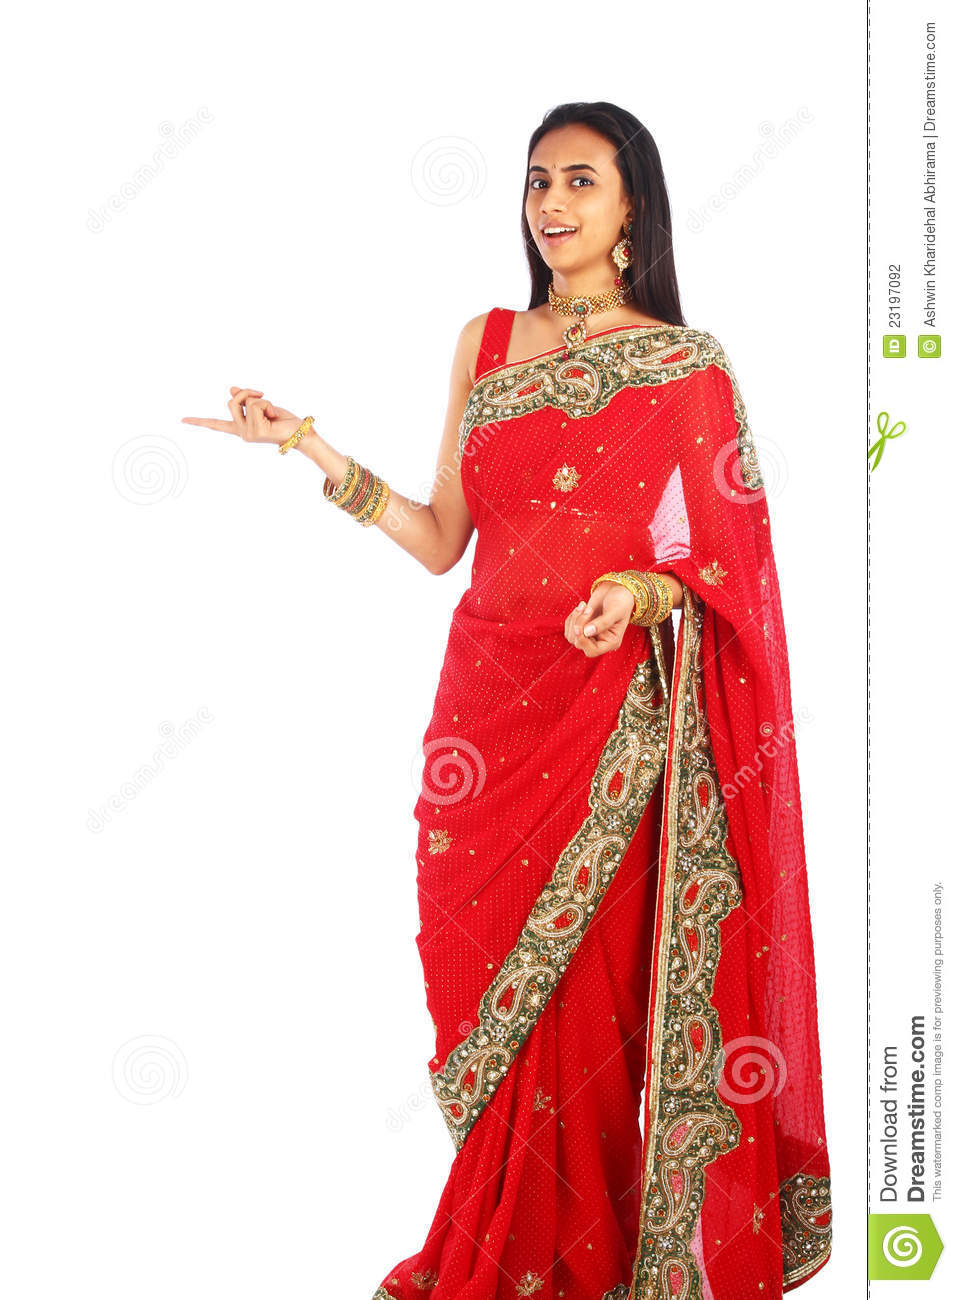 Young Indian Girl In Traditional Clothing. Stock ...